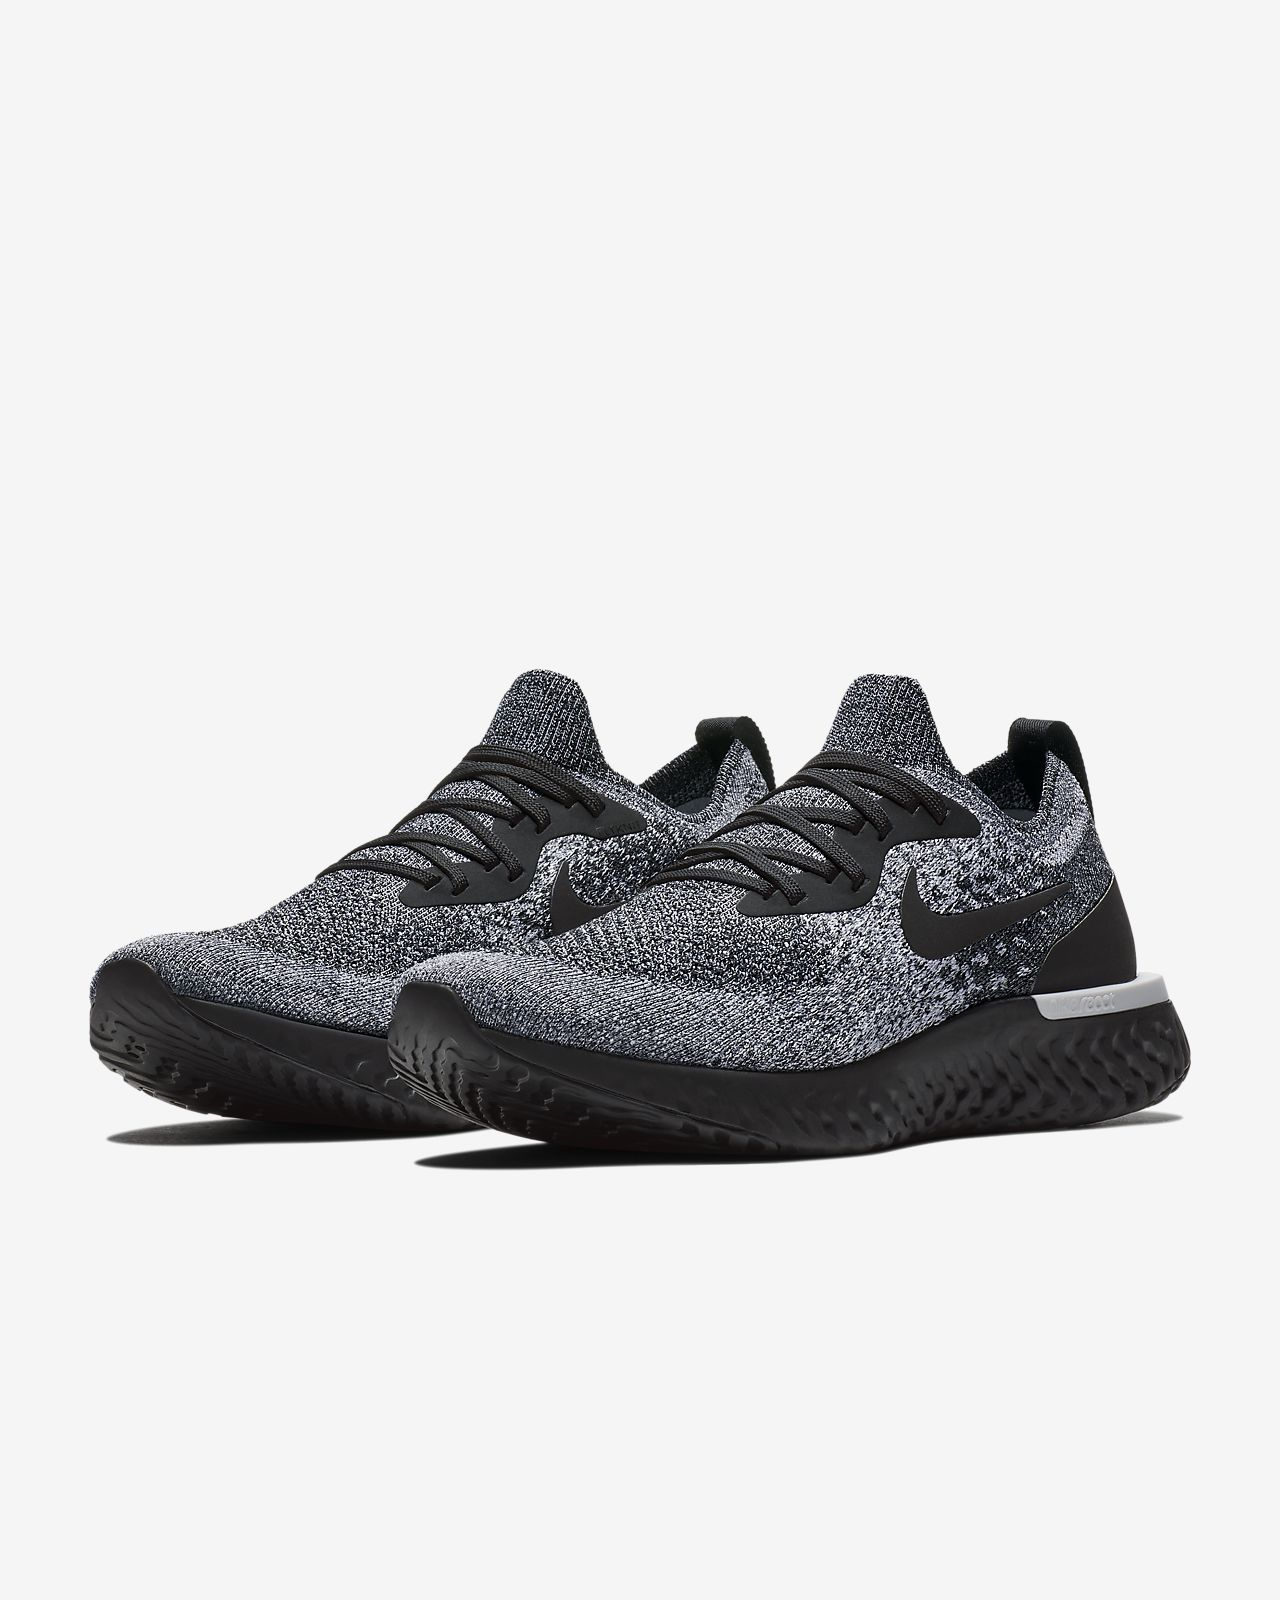 new product fd093 fbfb2 Men s Running Shoe. Nike Epic React Flyknit